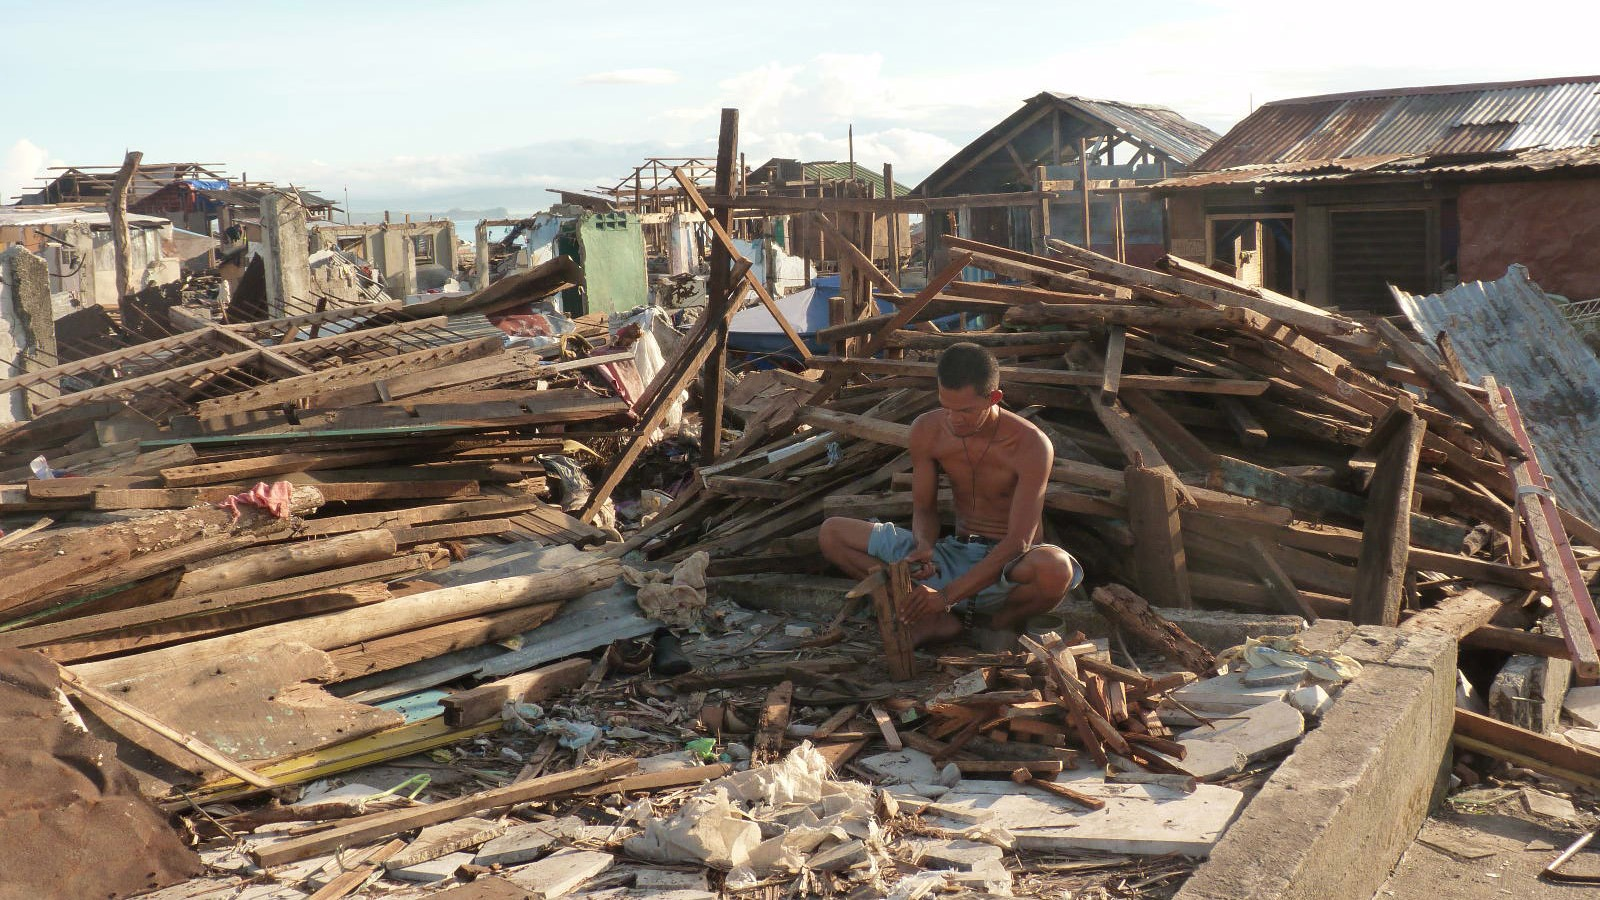 Relief to survivors of Typhoon Haiyan, which struck the Philippines in November 2013, has been limited in some areas - especially for shelter